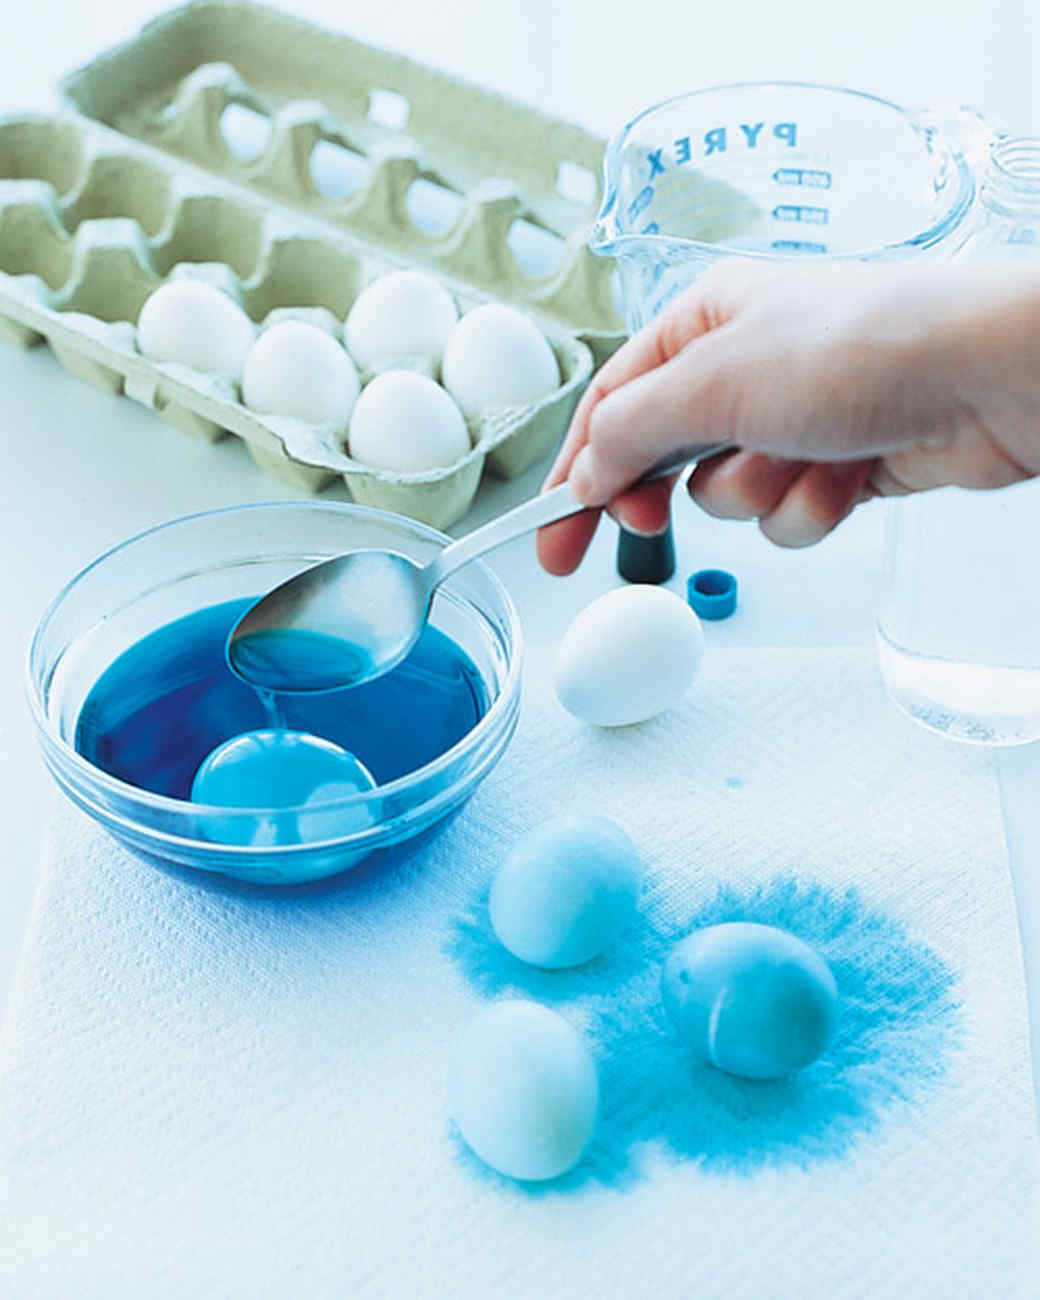 How to make marbleized easter eggs martha stewart steps 1 and 2 negle Image collections